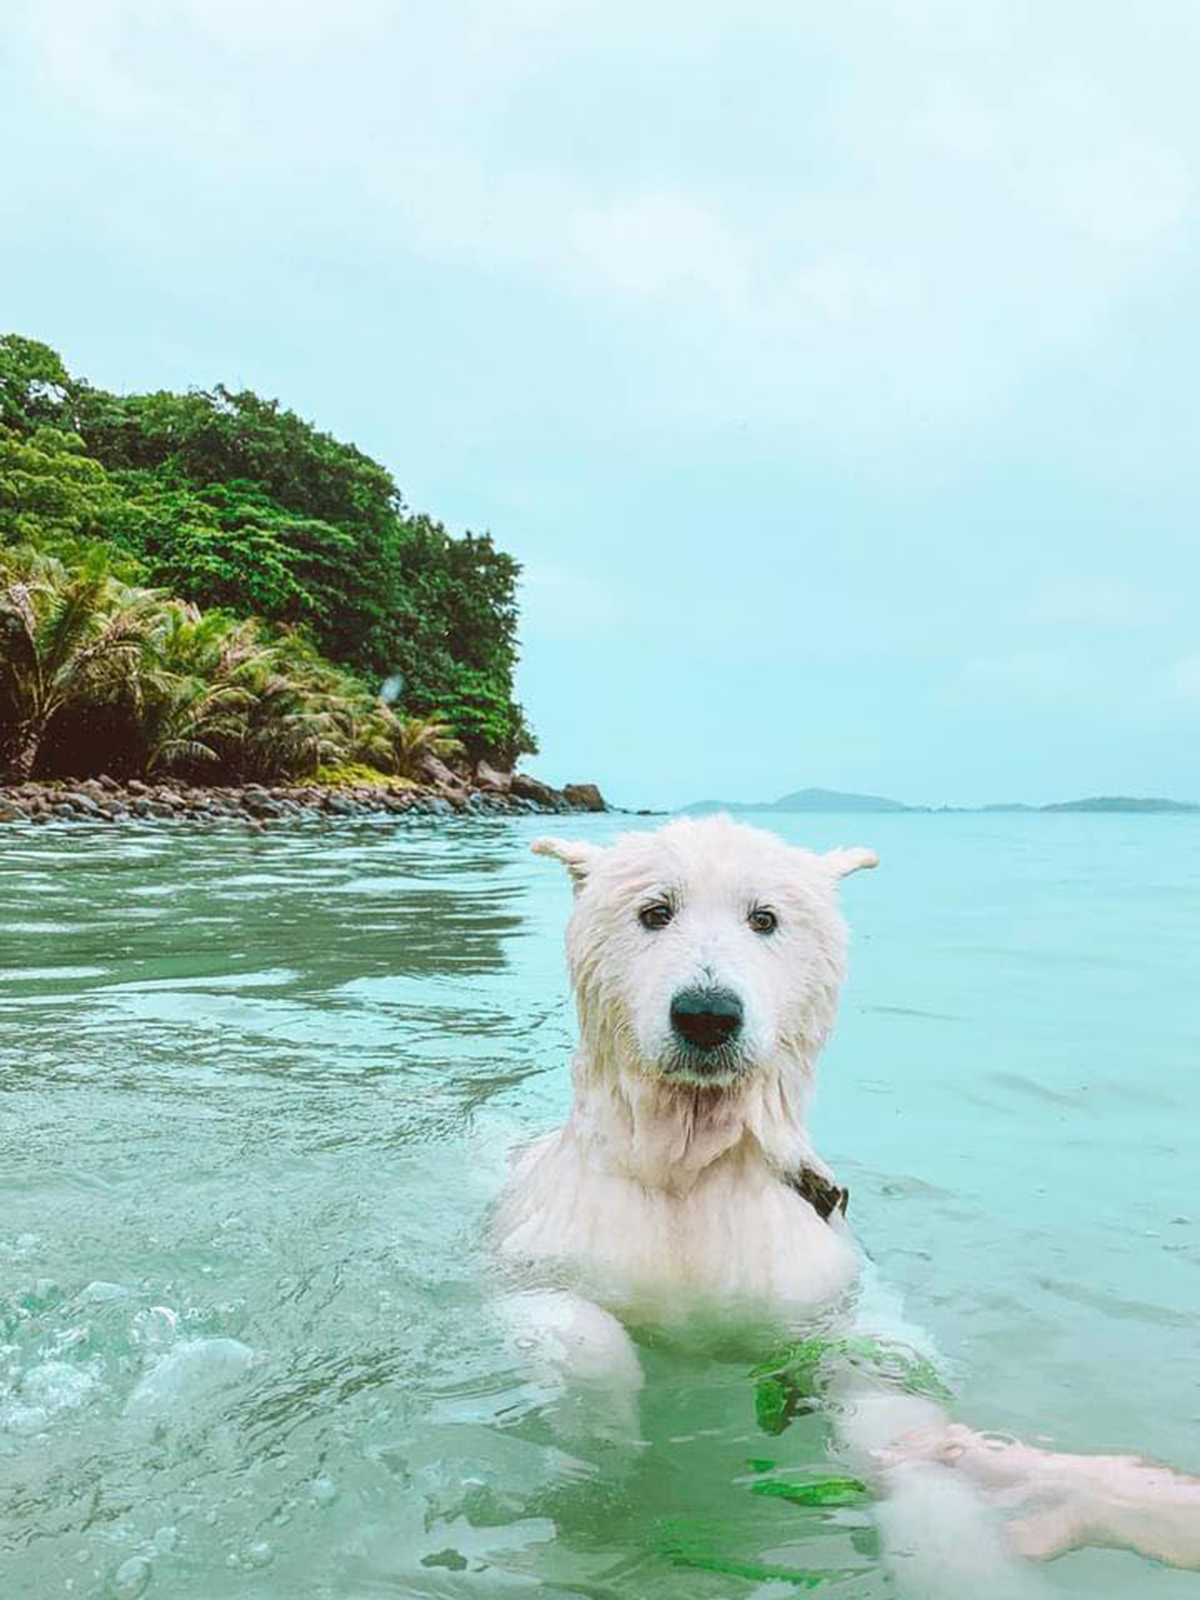 It's a dog's life: crazy canine travels across Vietnam's southern beaches